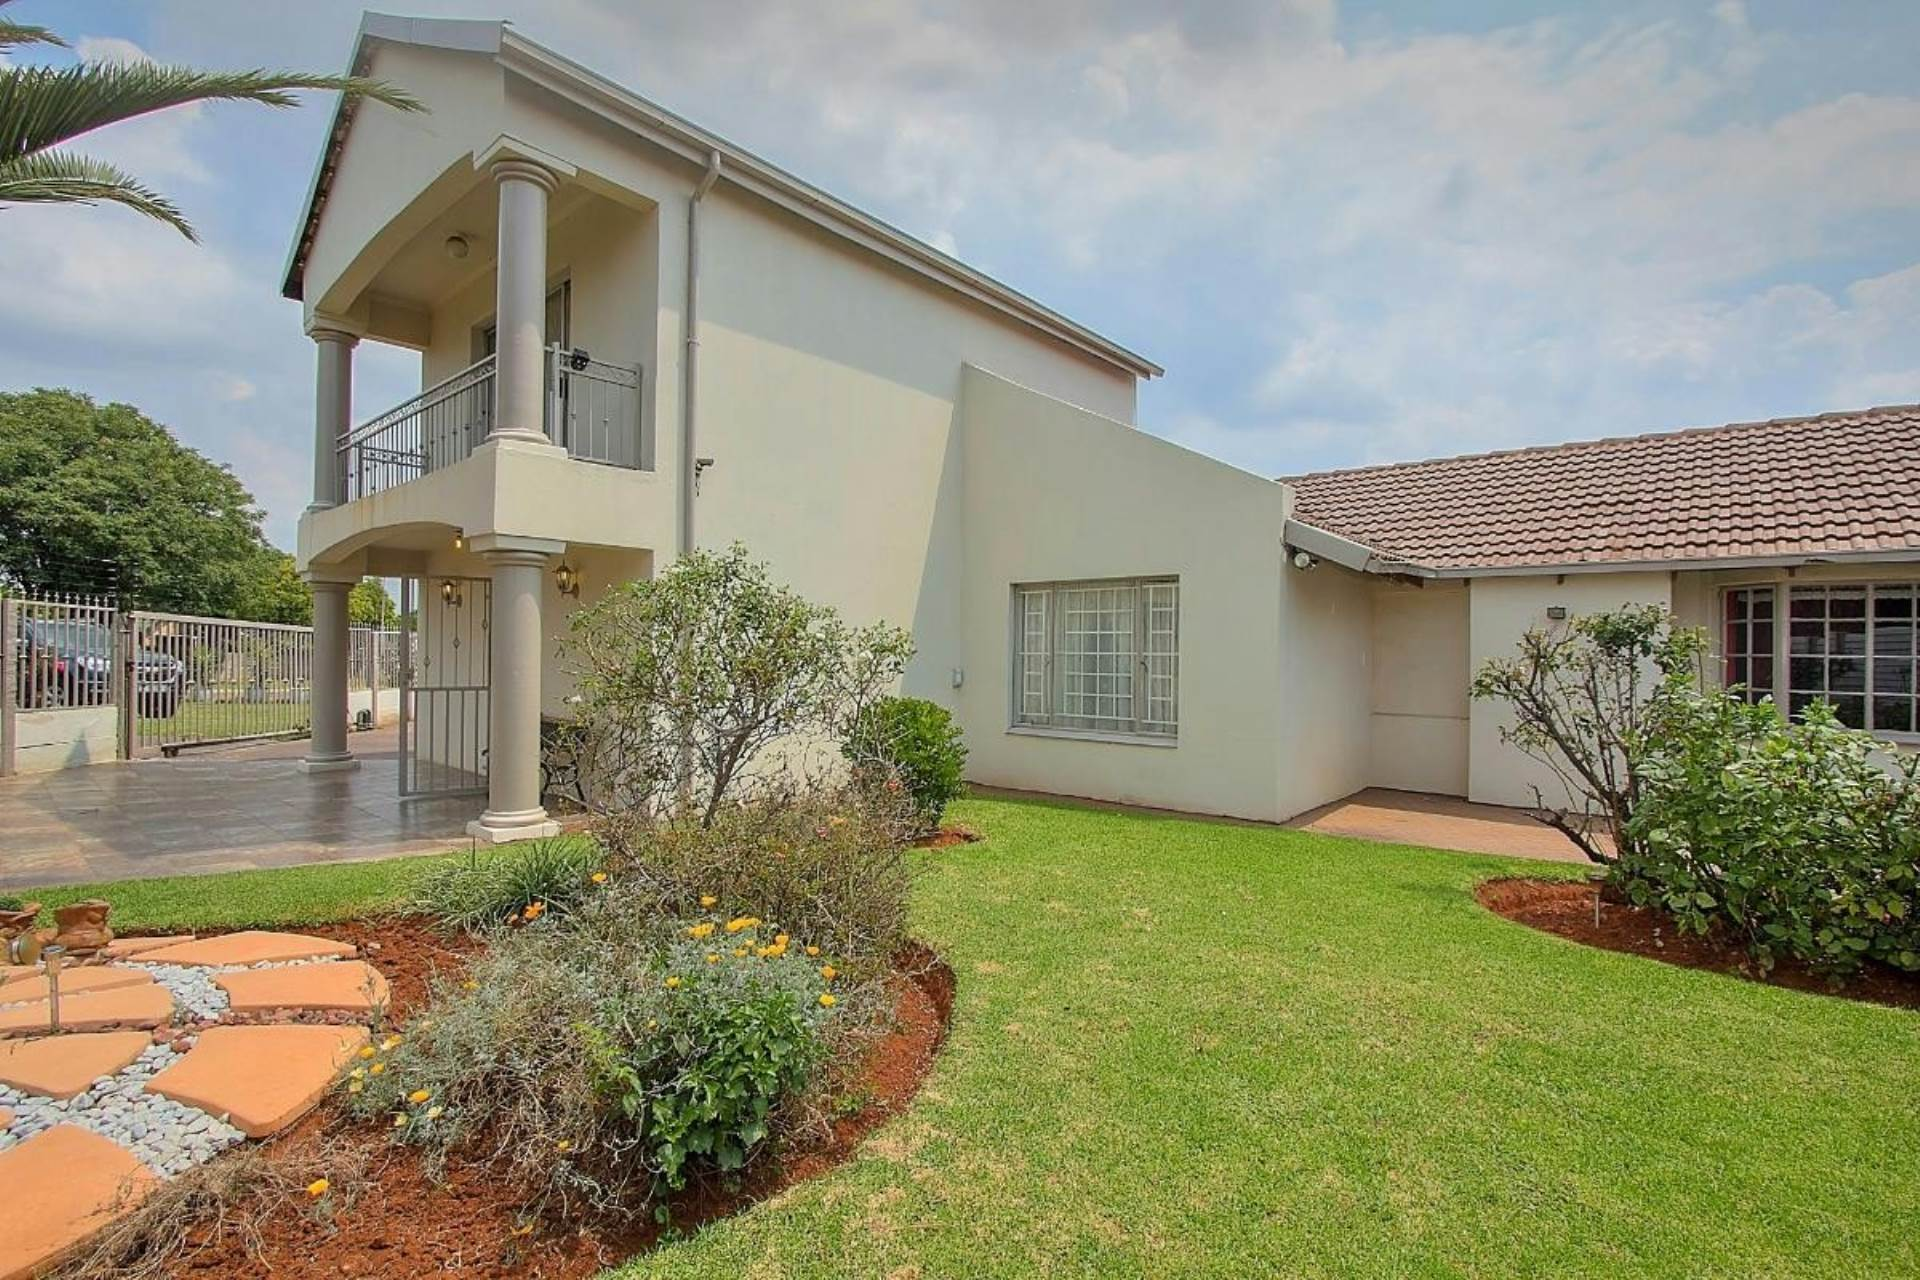 3 BedroomHouse For Sale In Dalpark Ext 6